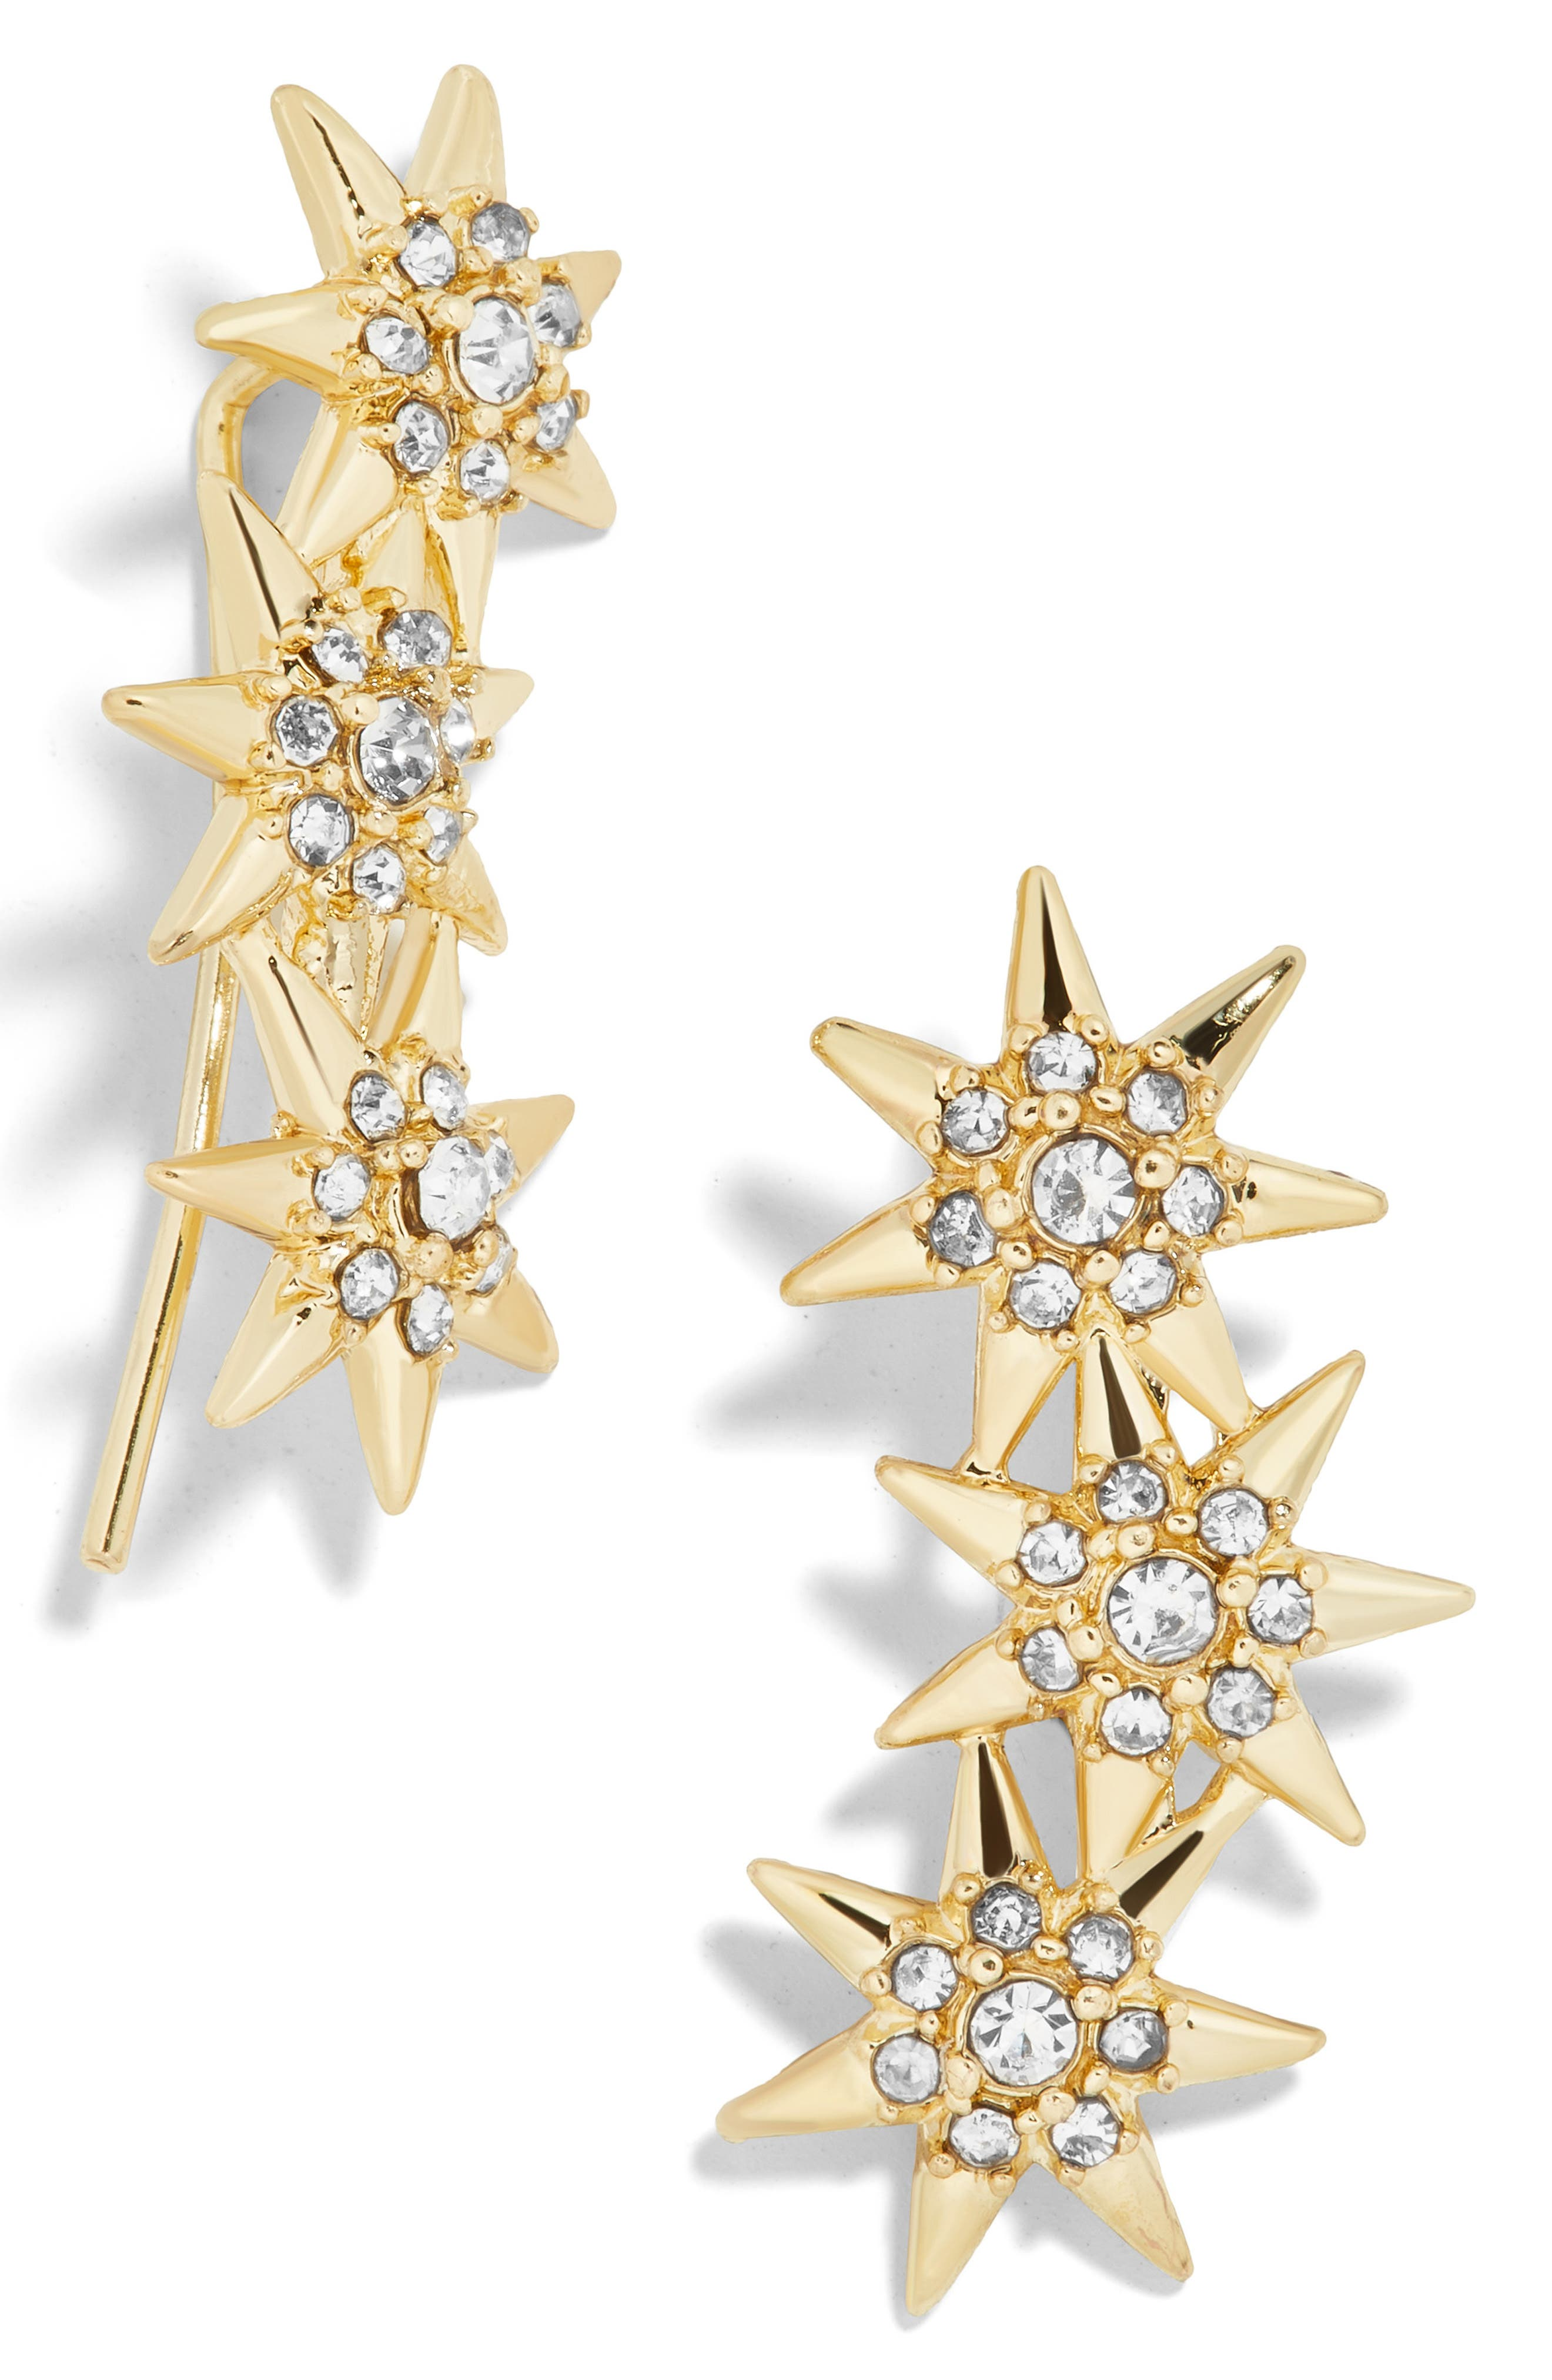 BAUBLEBAR, Calyptra Star Crystal Ear Crawlers, Main thumbnail 1, color, GOLD